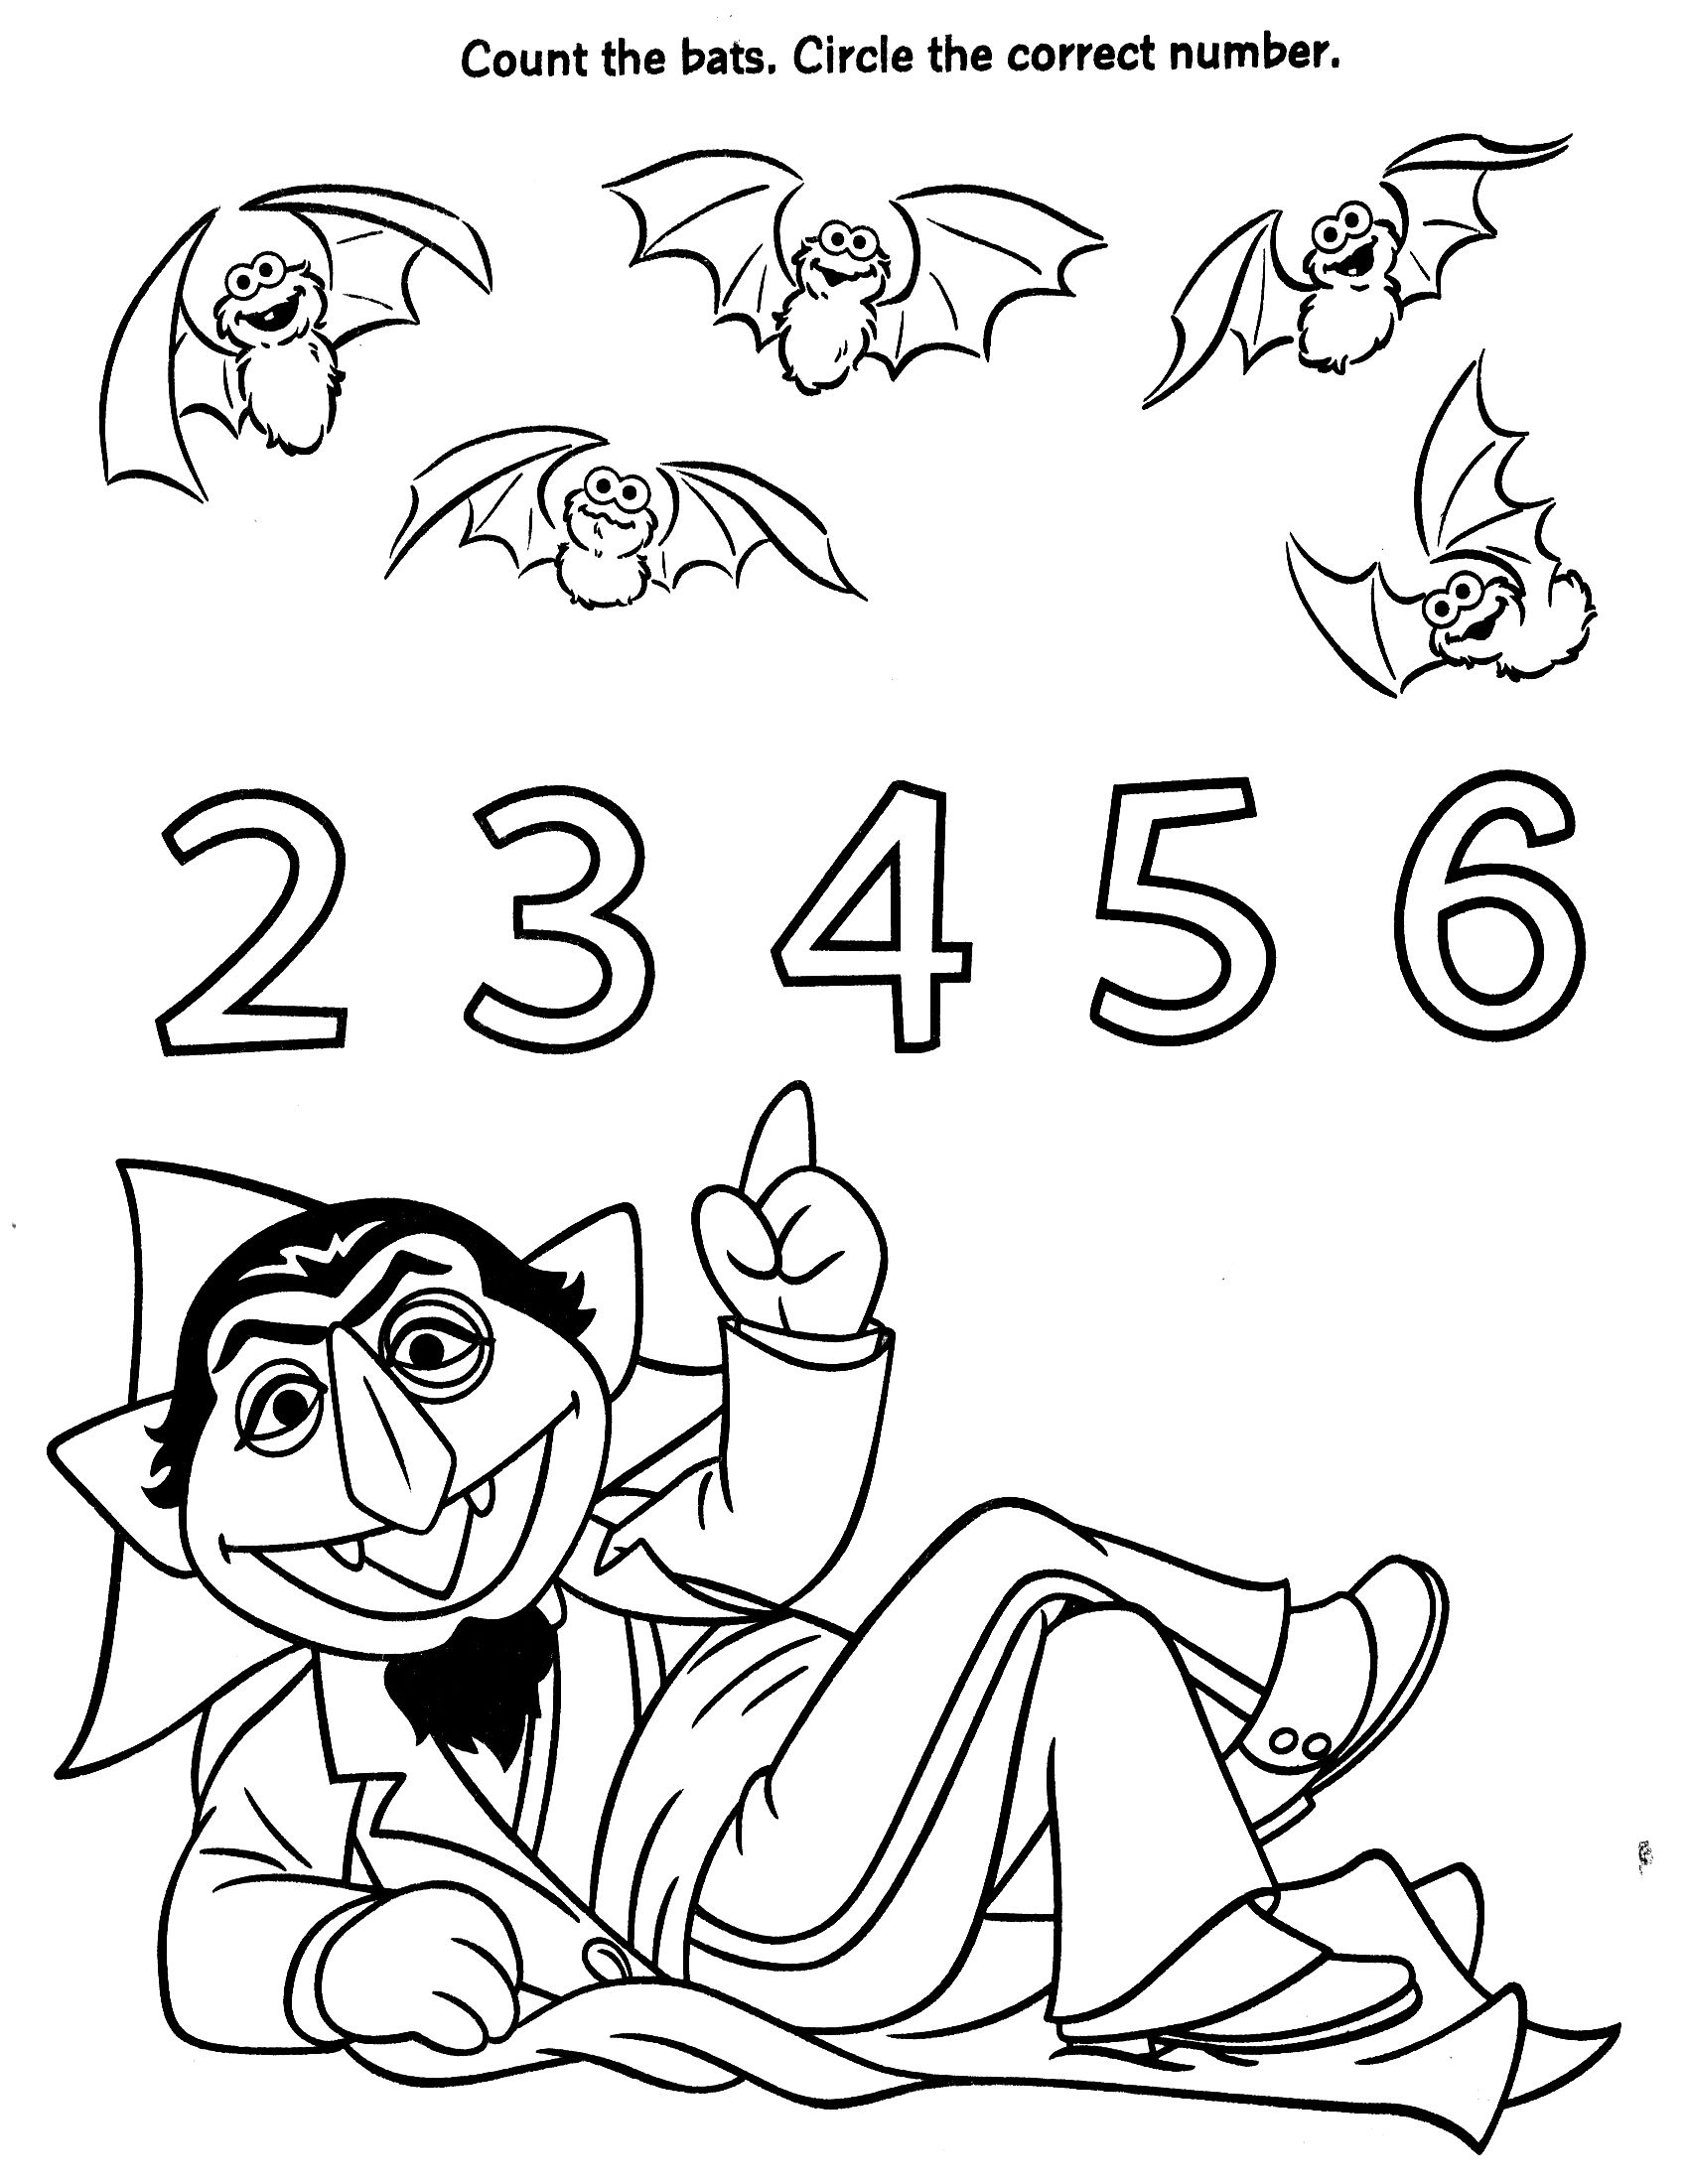 Sesame Street Coloring Pages - Bing Images   Elmo World's